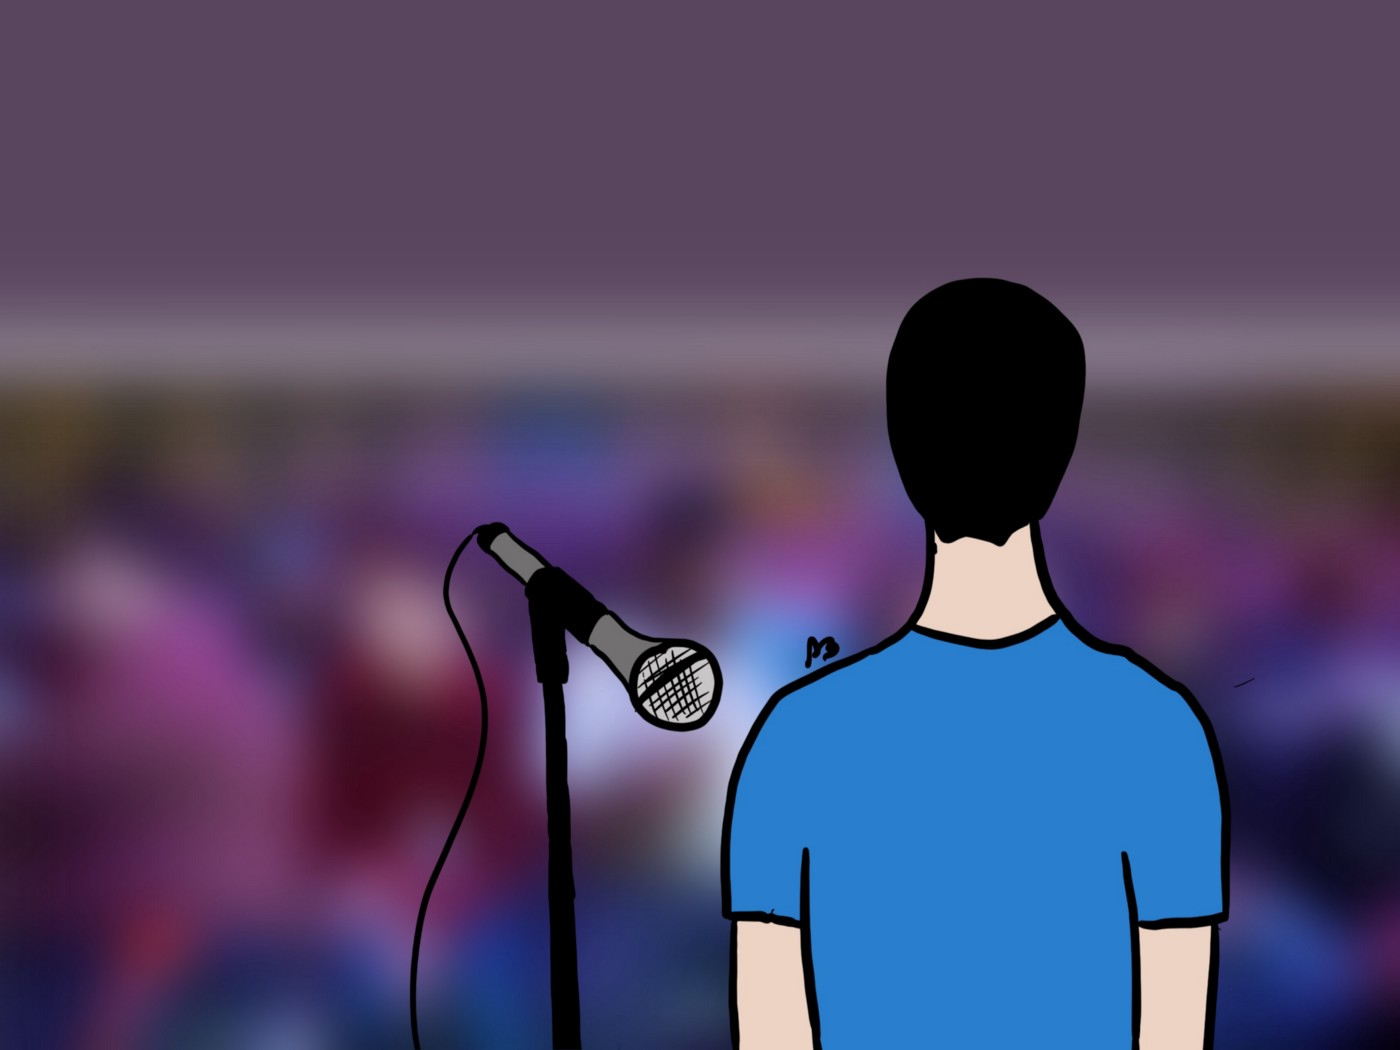 Illustration of someone speaking in front of an audience